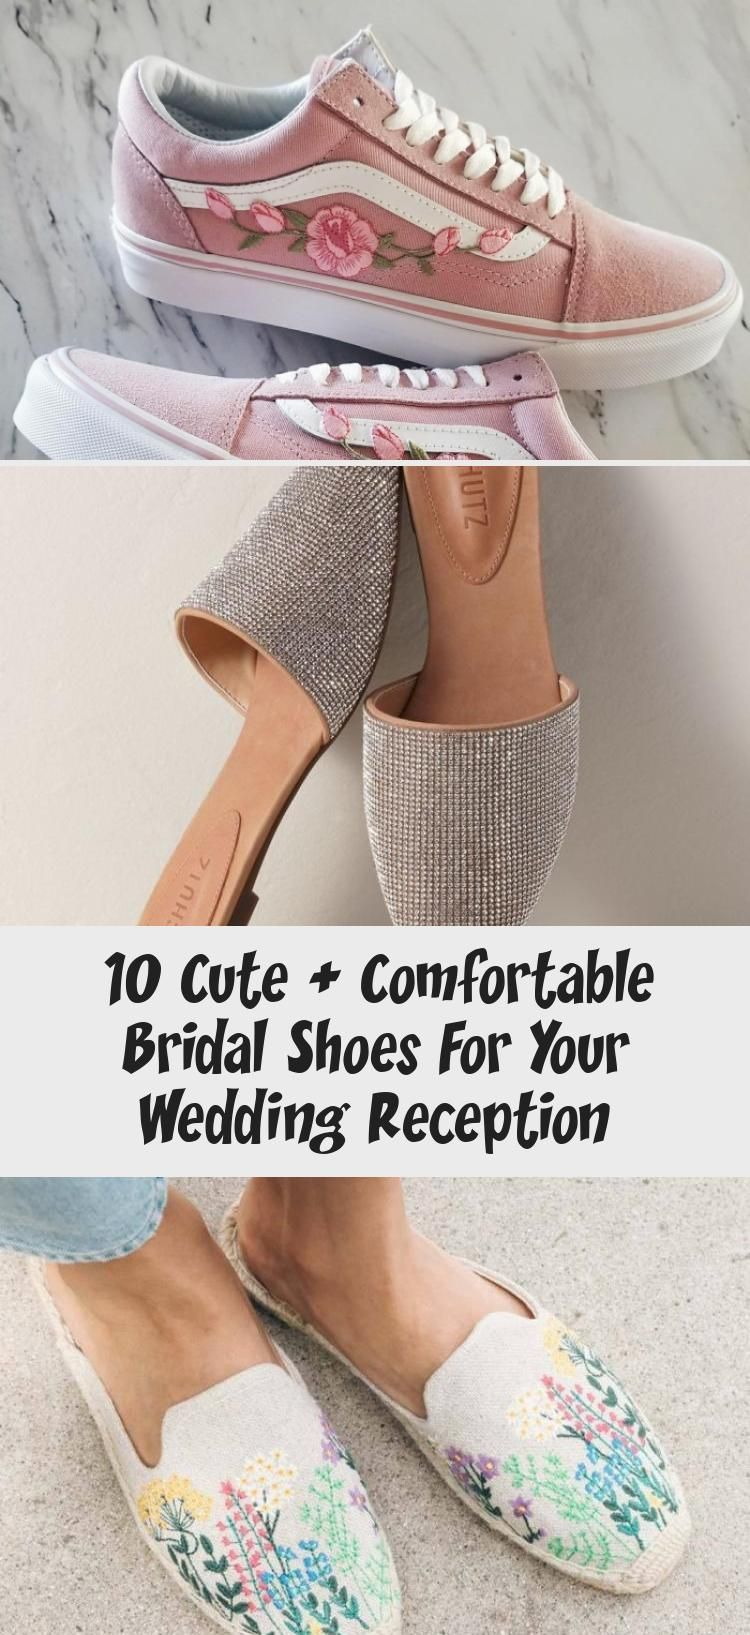 10 Cute + Comfortable Bridal Shoes For Your Wedding Reception #WeddingShoesVans ... ,  #badgleymischkaBridalShoes #Bridal #BridalShoesdesigner #BridalShoesgold #BridalShoeslace #BridalShoesphotography #BridalShoesrustic #BridalShoessandals #BridalShoessparkly #BridalShoesunique #BridalShoeswedges #Comfortable #Cute #navyBridalShoes #Reception #Shoes #Wedding #WeddingShoesVans